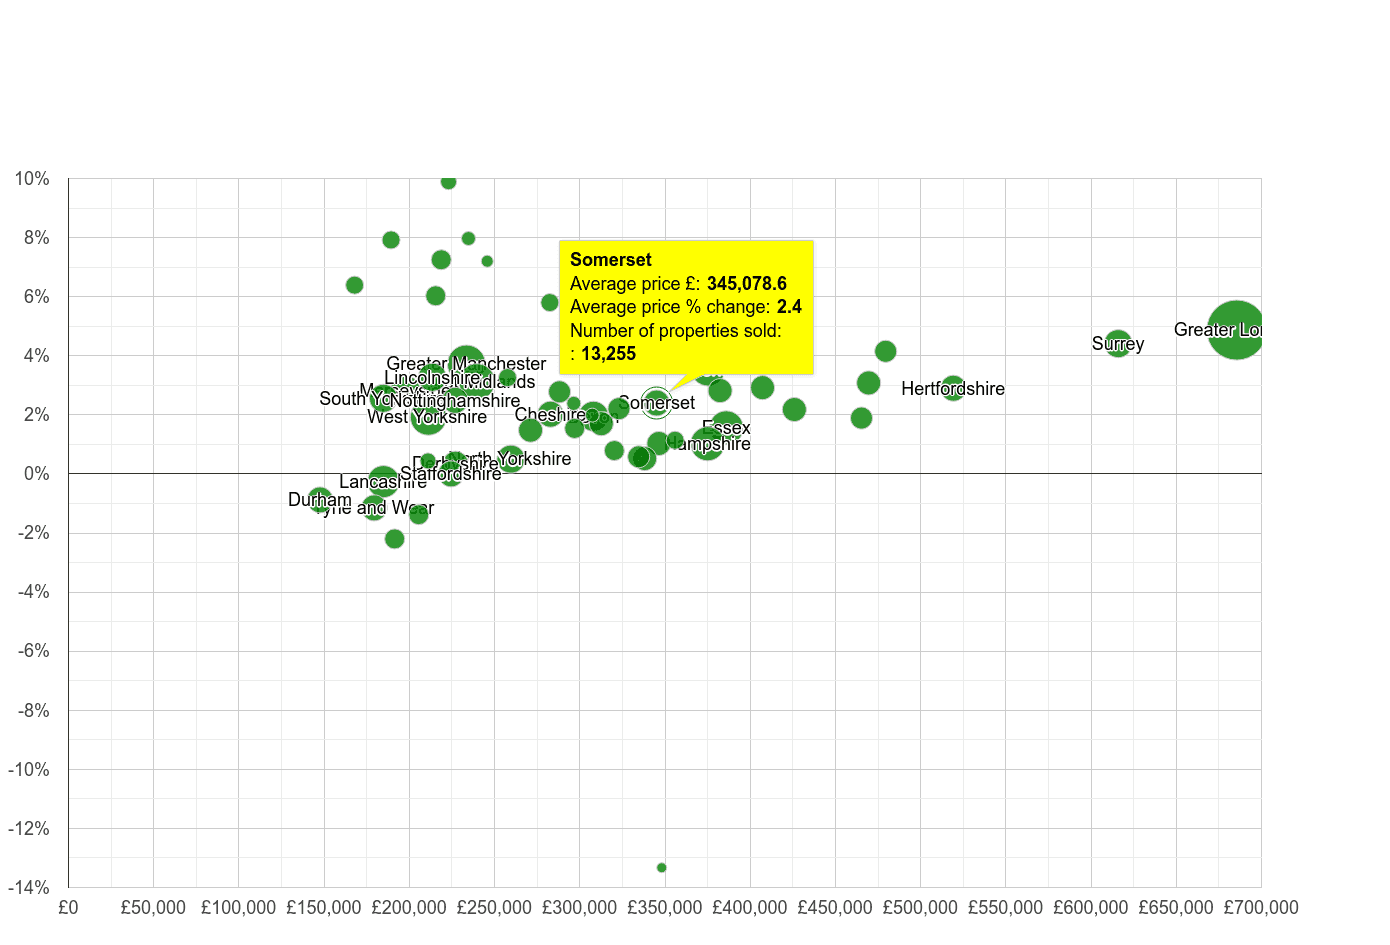 Somerset house prices compared to other counties